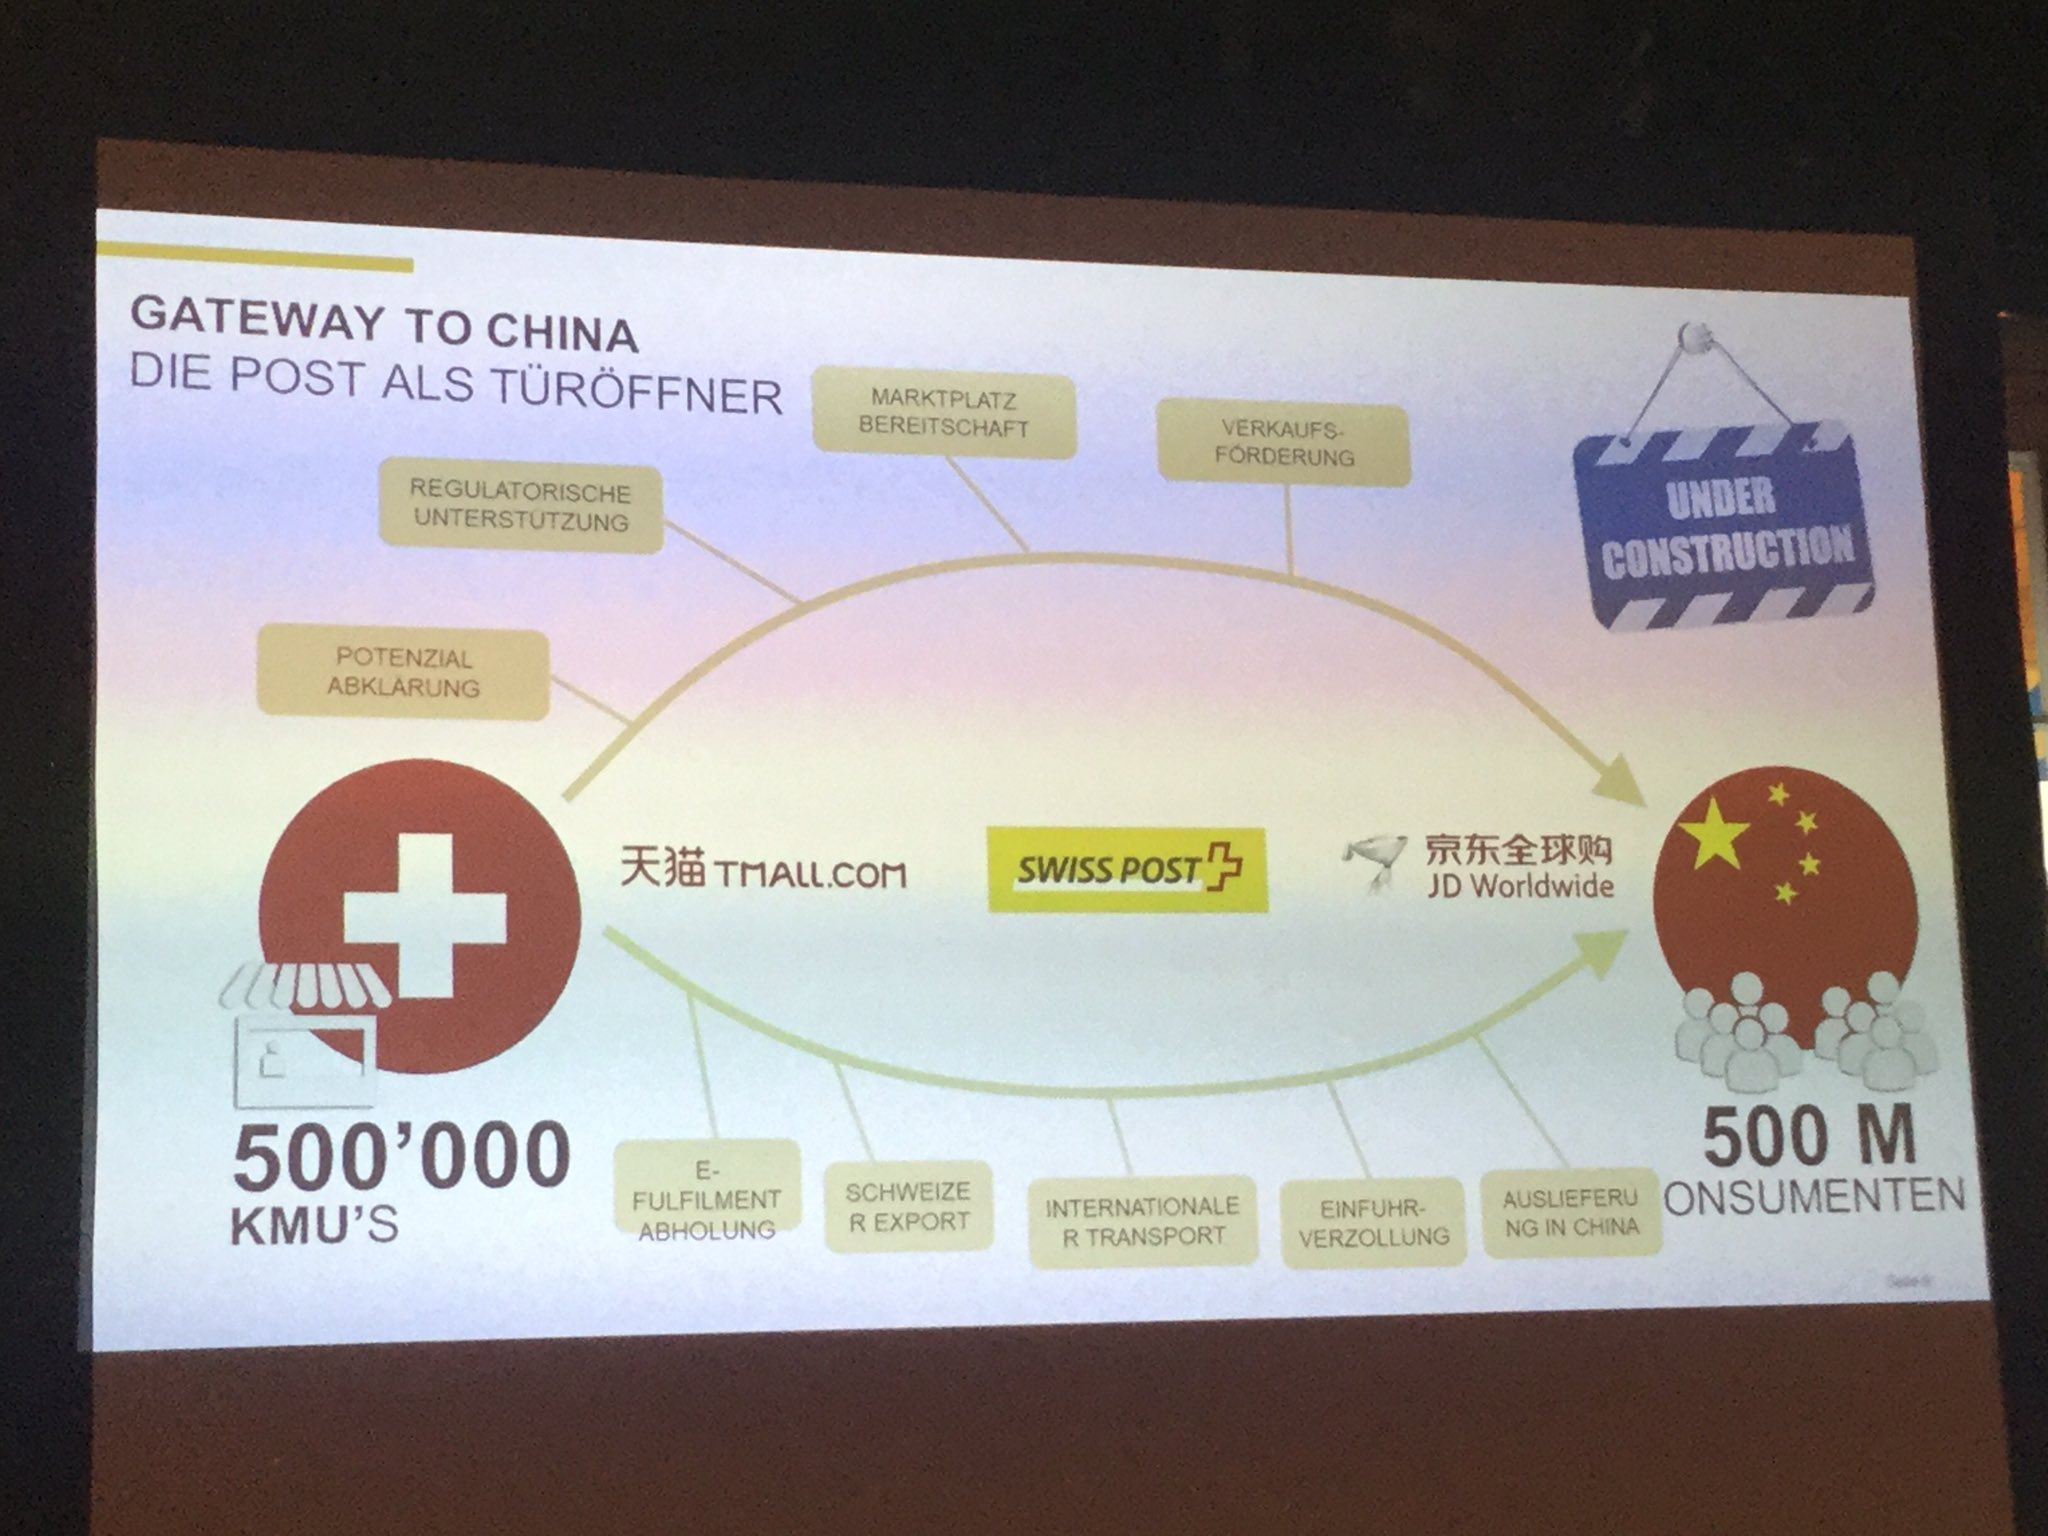 Crossborder-Event 2017 - Pilotprojekt der Post: Gateway to China